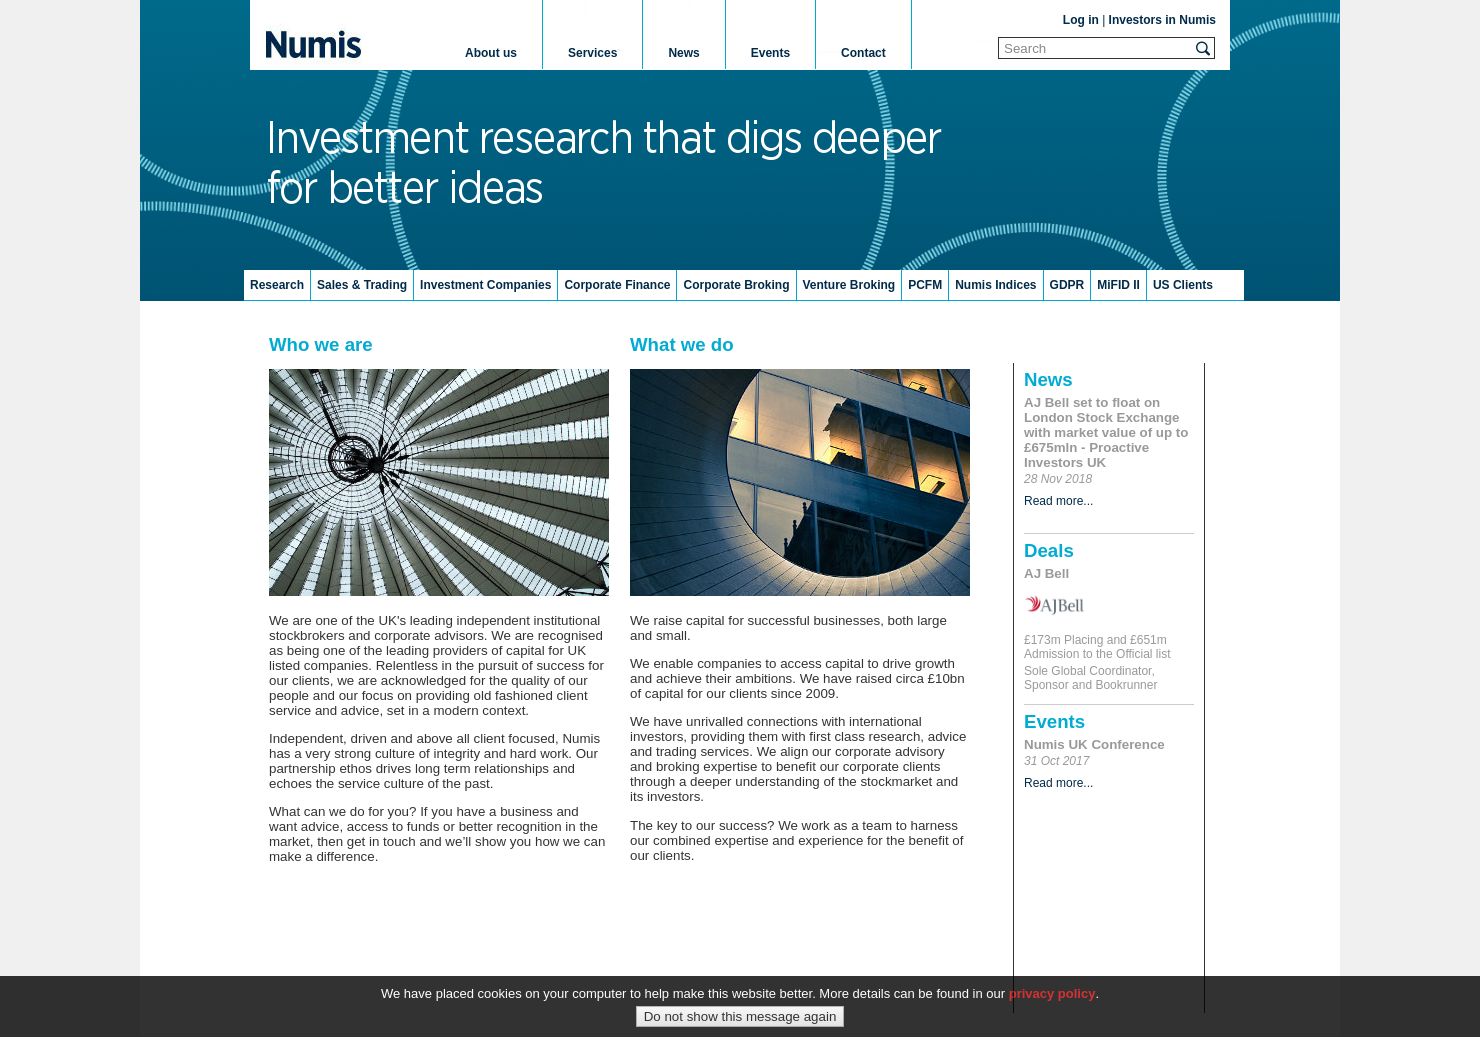 Numis Home Page